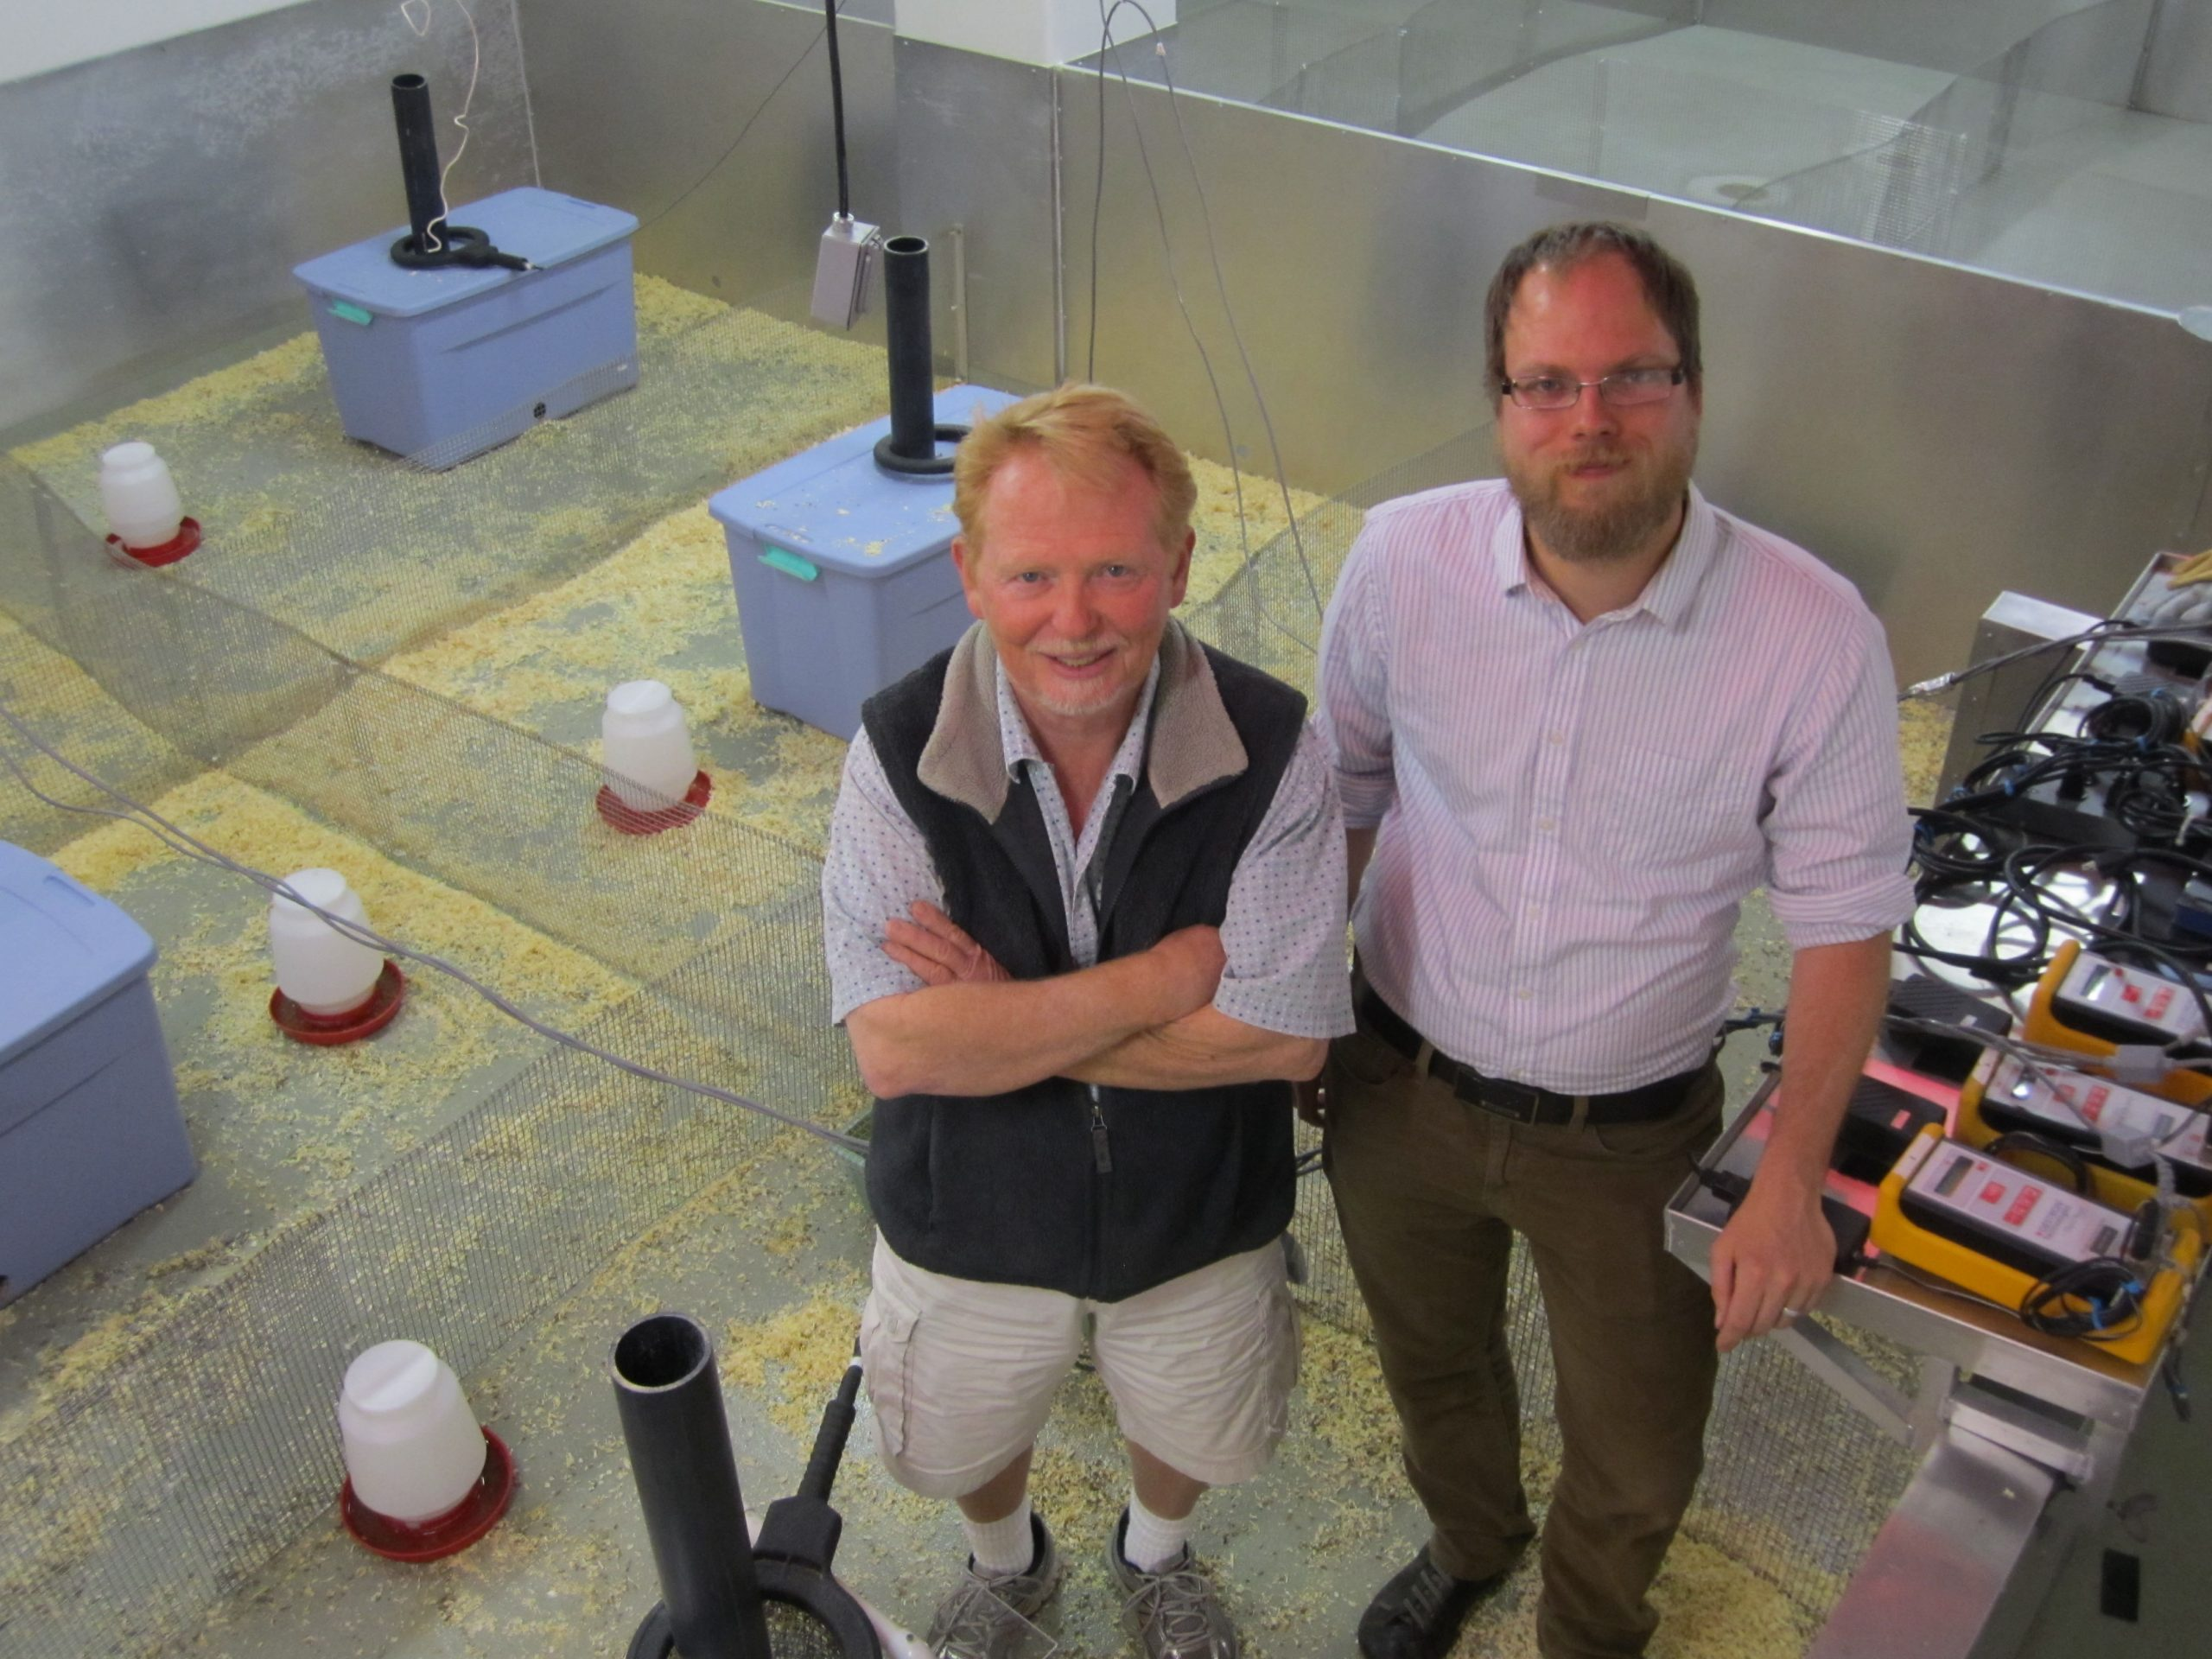 """University of Utah biology professor Wayne Potts, left, and former Ph.D. student James Ruff conducted a new study showing that sugar is toxic to mice in doses proportional to those now considered safe for humans – the equivalent of a health human diet plus three sweetened soda drinks daily. They are standing in one of their """"mouse barns,"""" which were used for a new, sensitive toxicity test in which house mice compete for territory in a more natural environment than small cages."""